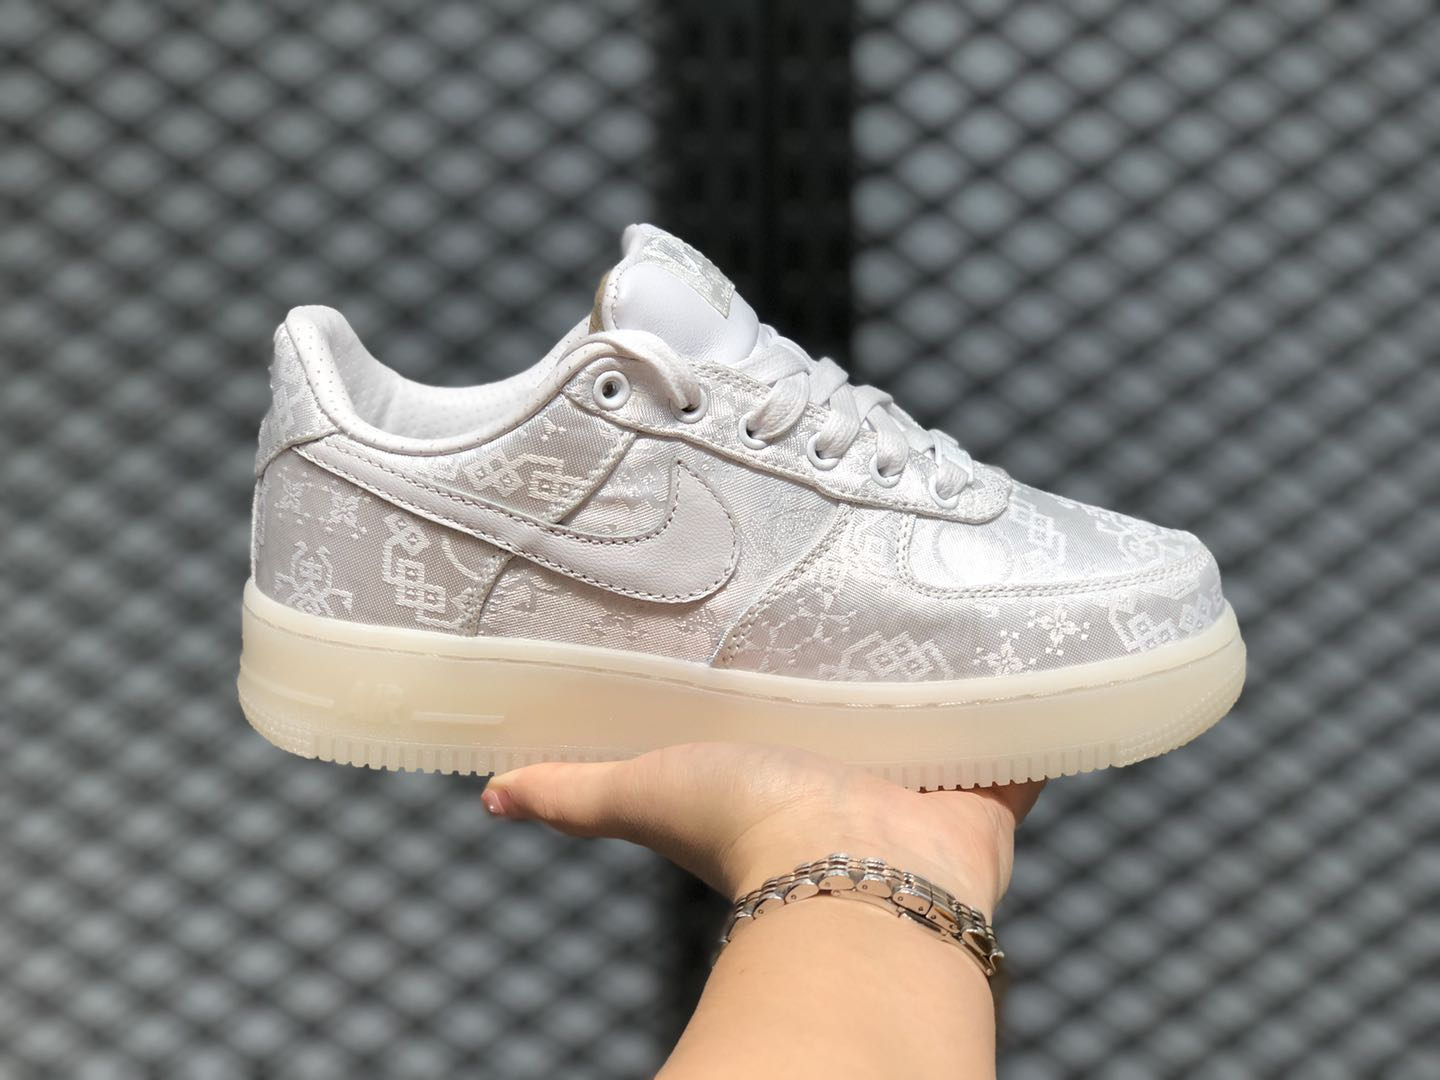 CLOT x Nike Air Force 1 Low Premium White Lifestyle Shoes AO9286-100